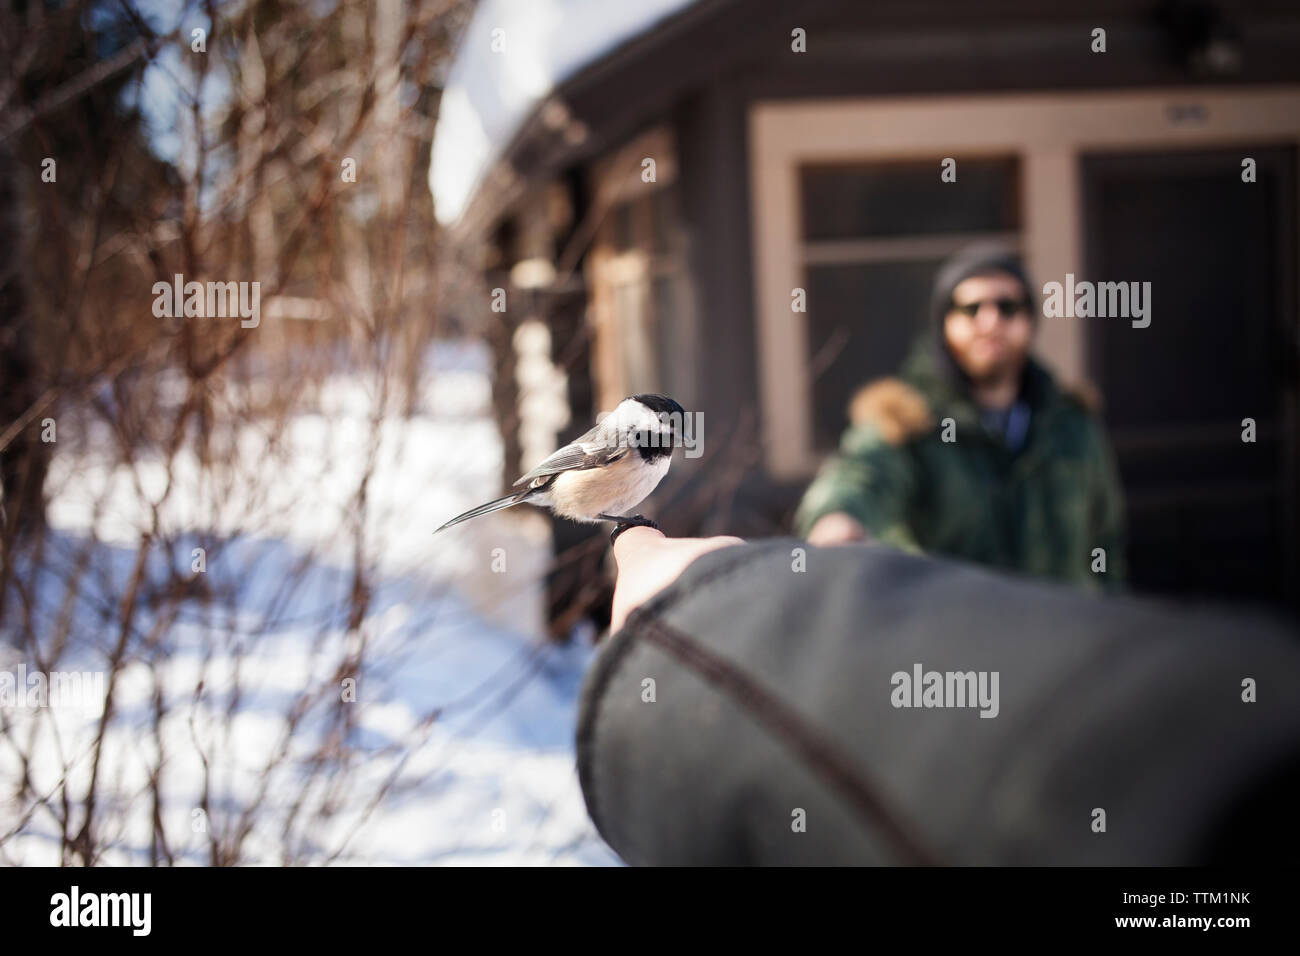 Carolina chickadee perching on woman's hand during winter - Stock Image